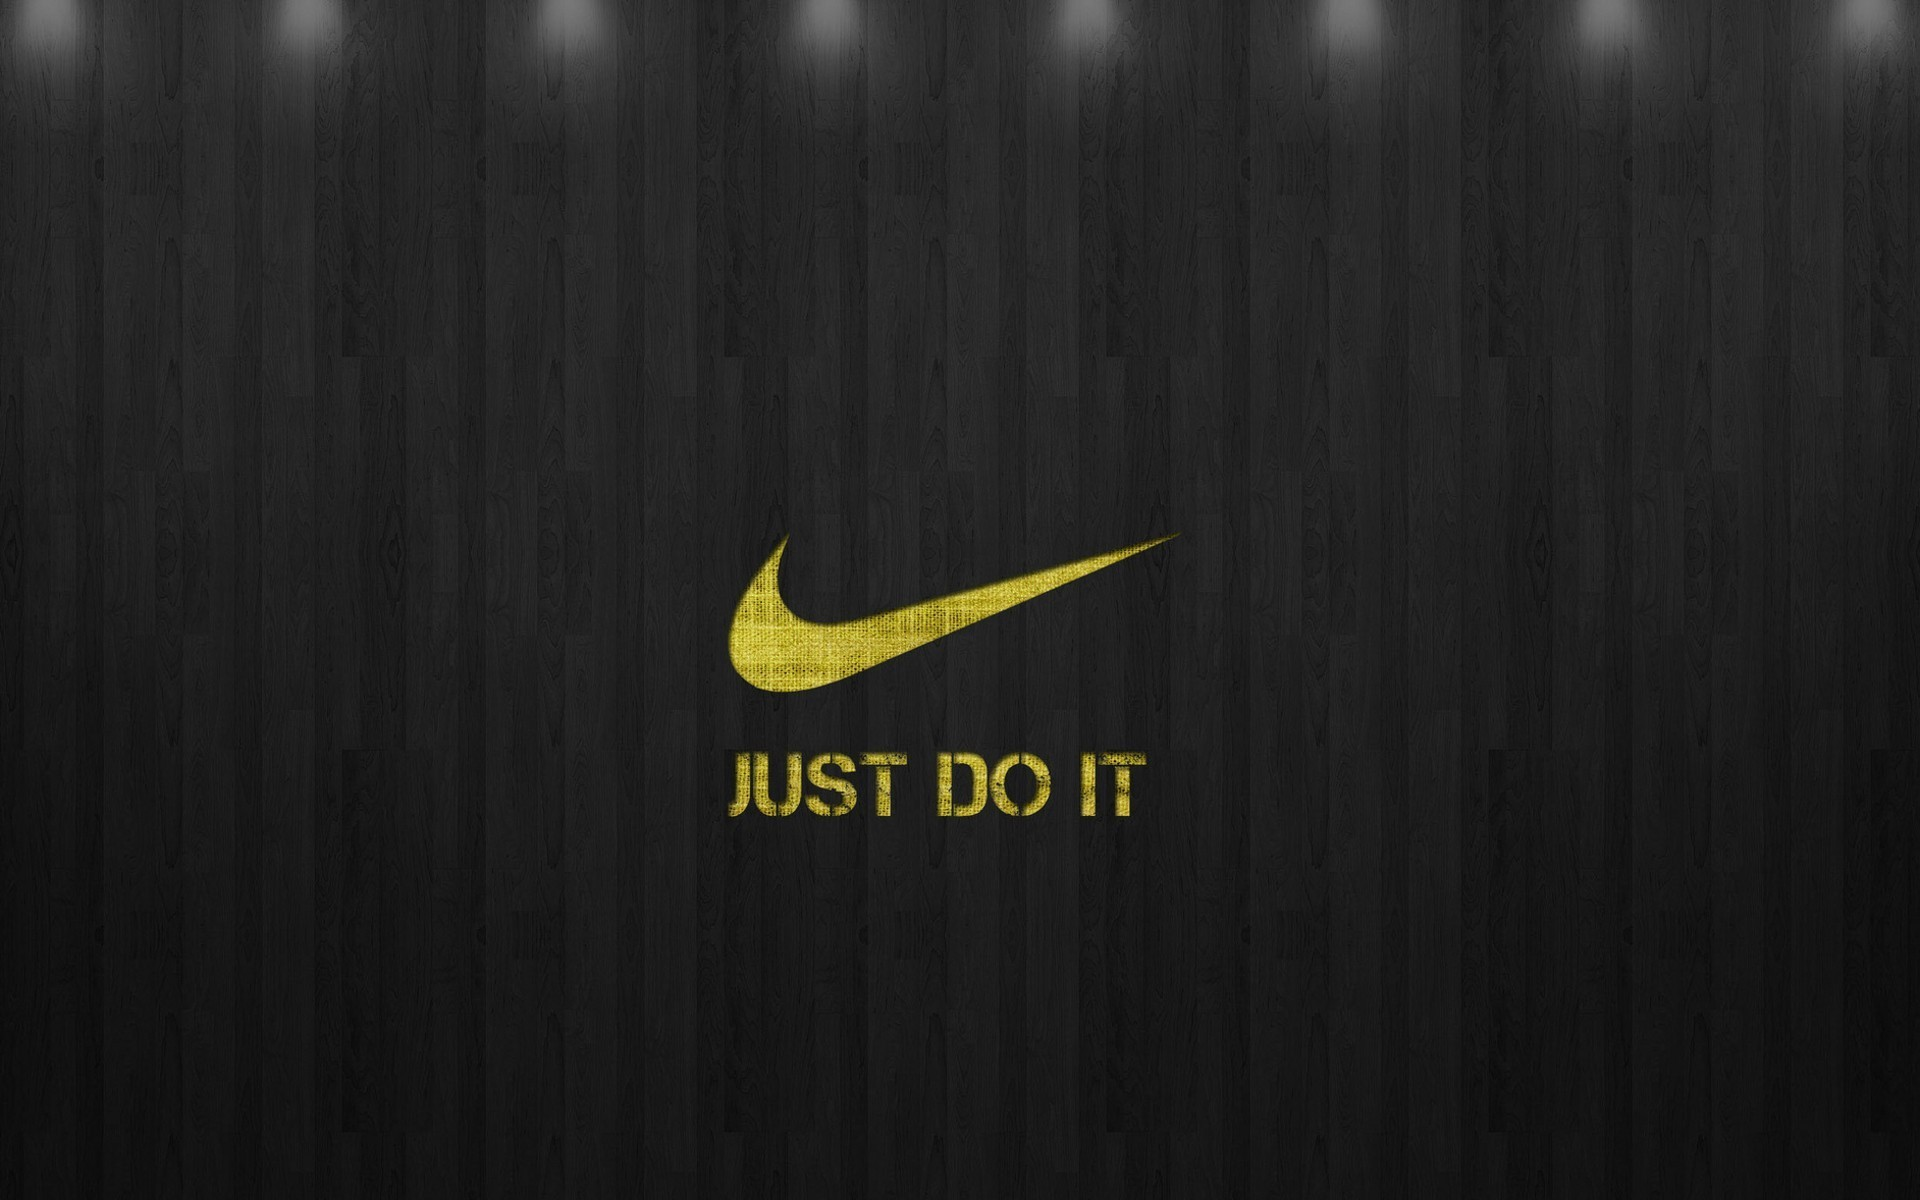 just do it nike brands logos sports wallpaper | allwallpaper.in